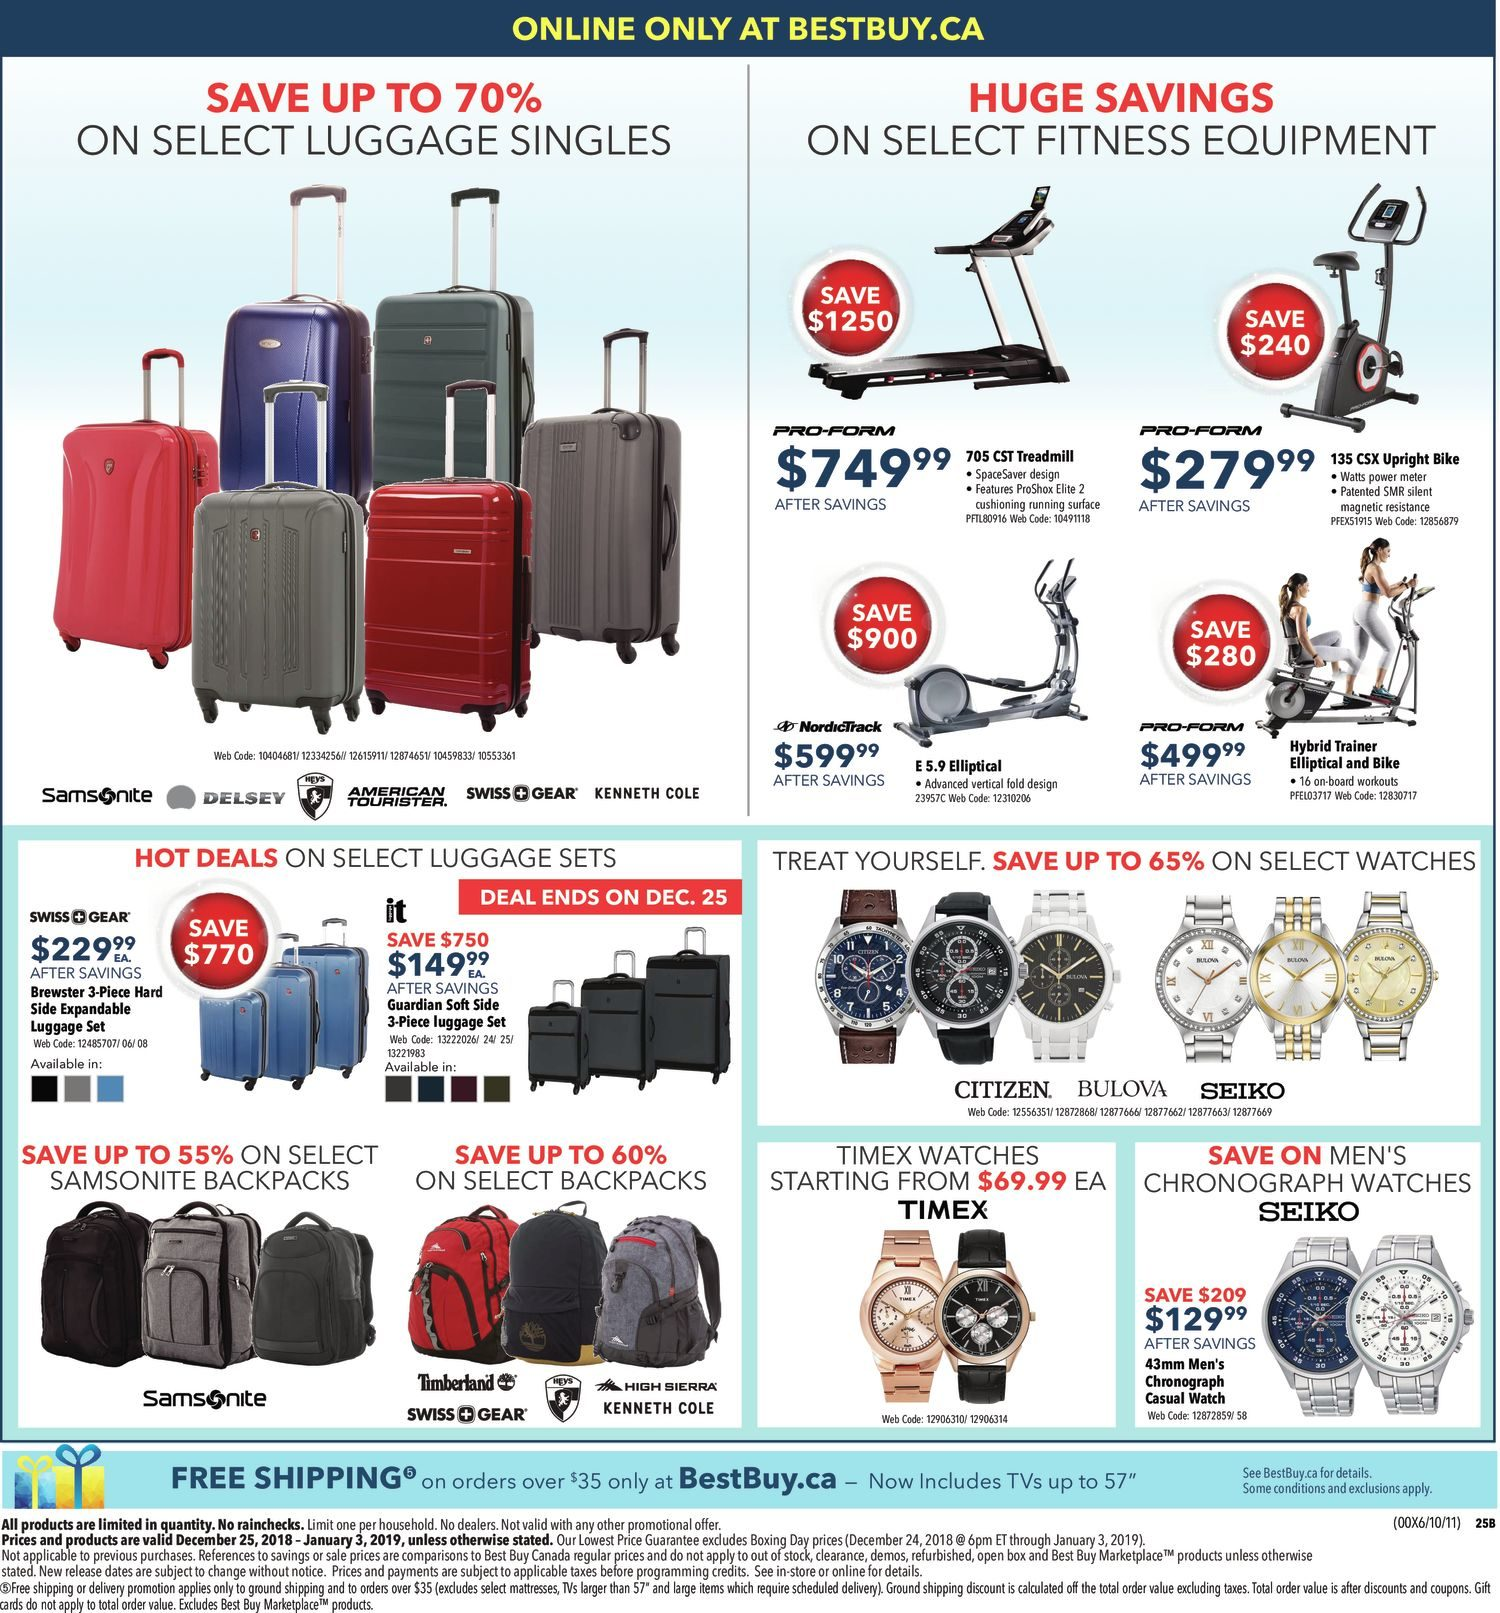 Luggage & Bags Trustful 10pcs/lot Luggage Hardware Accessor No Key Switch Lock Hand Zip Lock Bags Padlock Cabinet/ Drawer/boxes Cheap Sales 50%